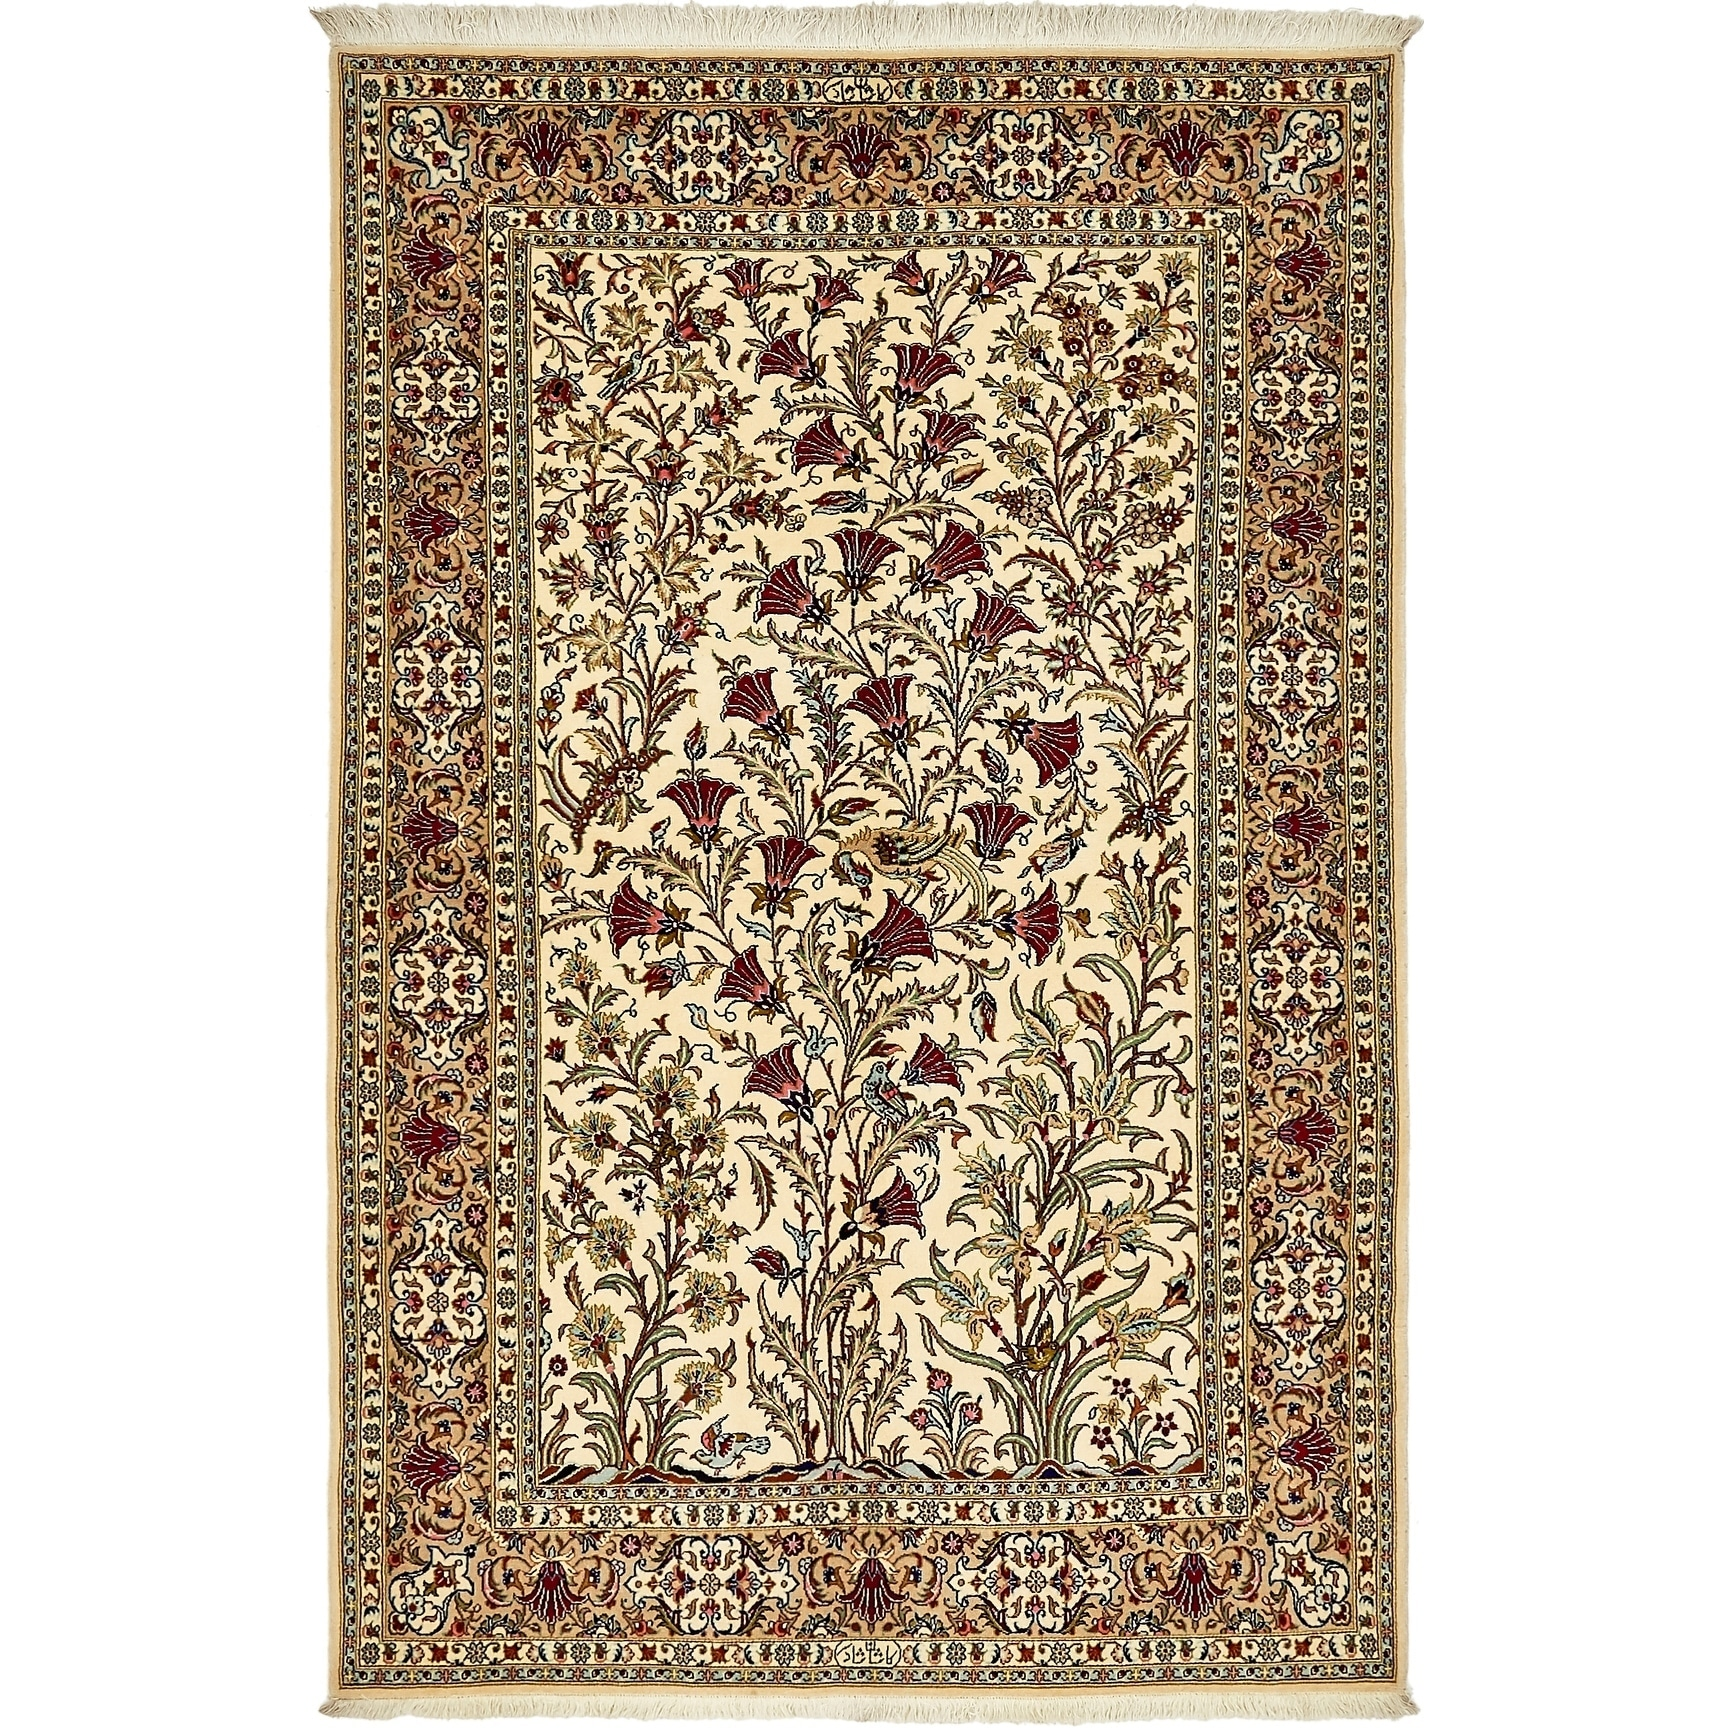 Hand Knotted Kashan Silk & Wool Area Rug - 4' 9 x 7' 2 (Cream - 4' 9 x 7' 2)